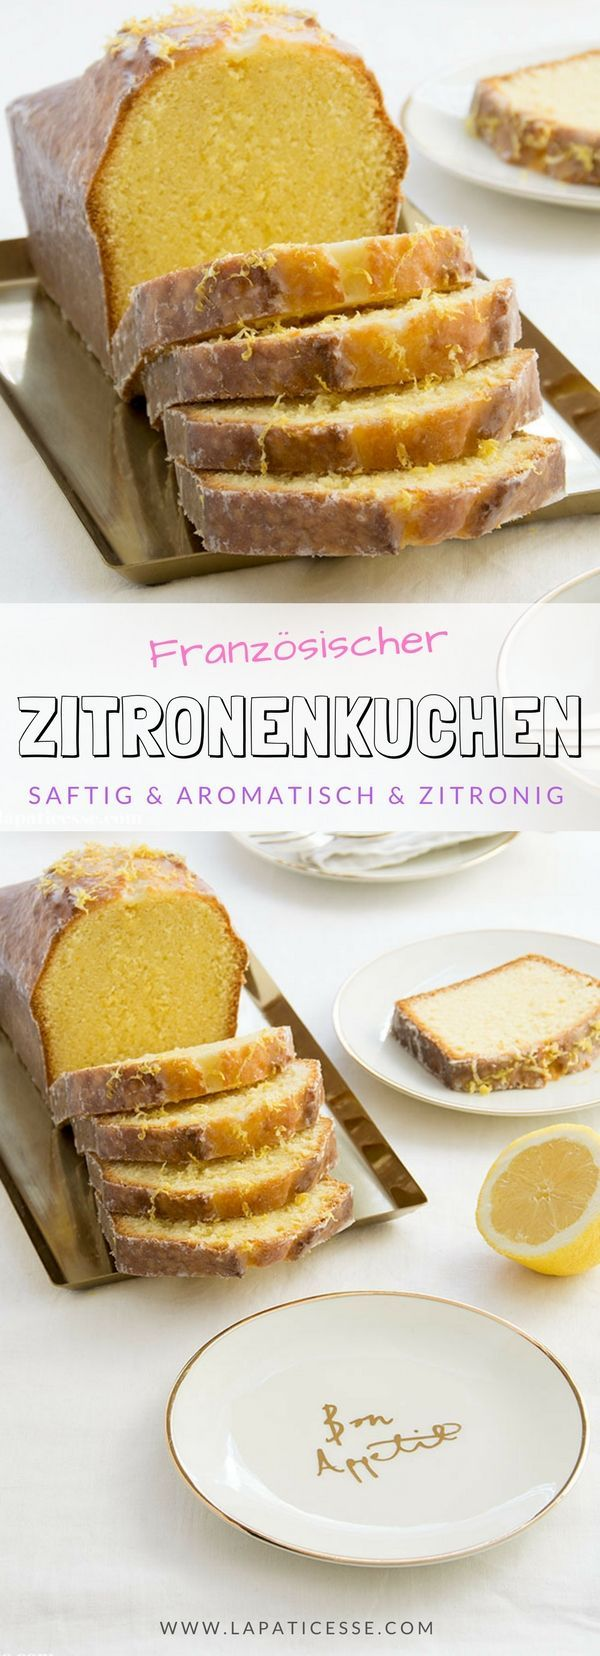 Photo of French lemon cake cake au citron and many box cake tips – La Pâticesse – the patisserie blog